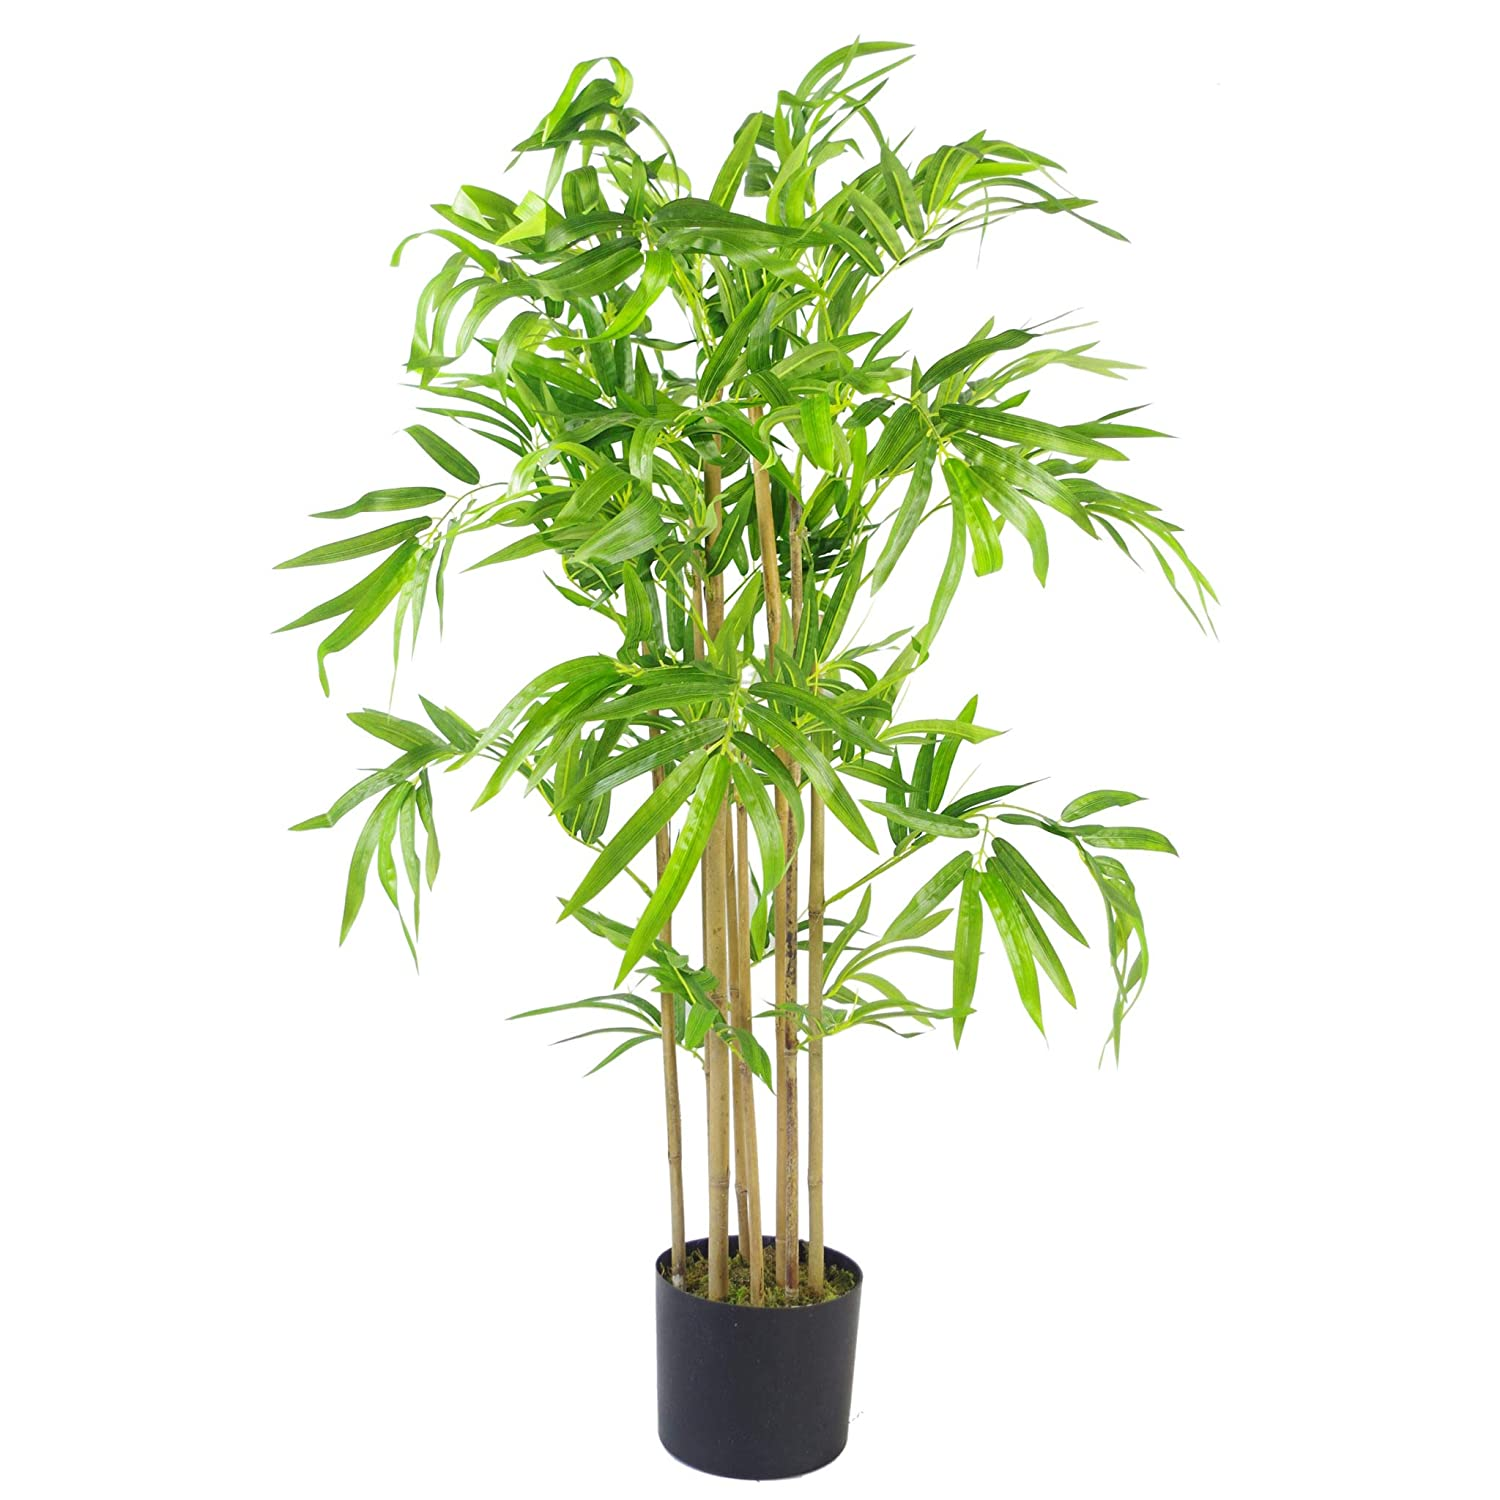 Leaf Design UK Plantes artificielles en Bambou Marron Taille XL 90 cm